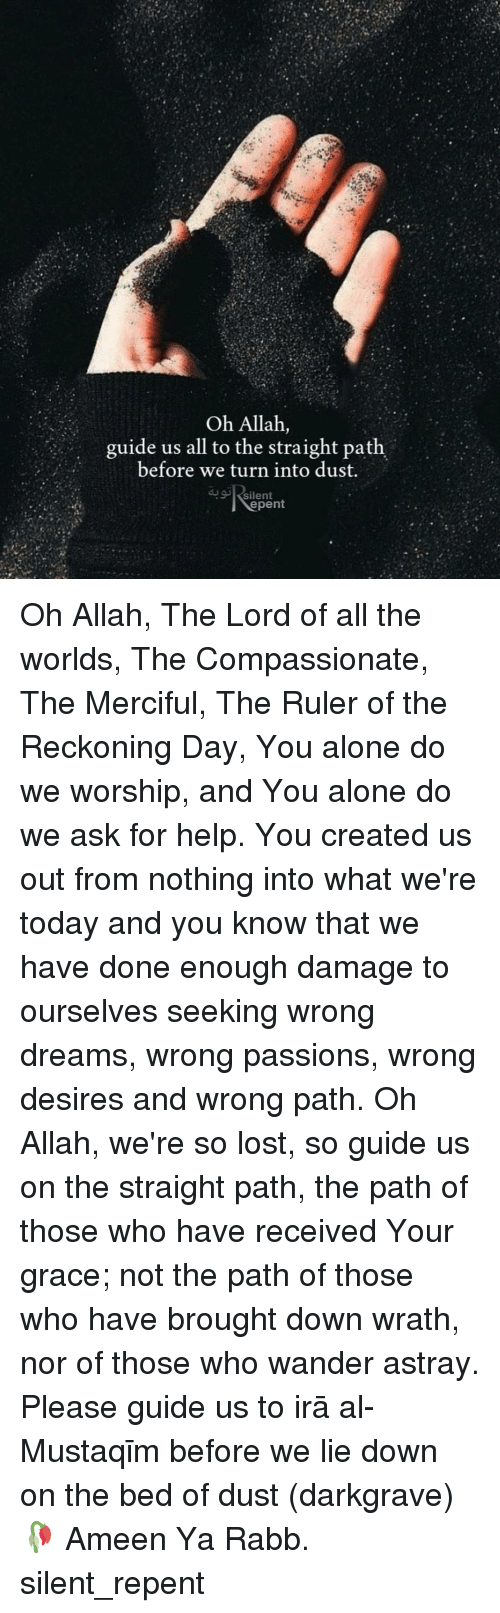 allah: Oh Allah,  guide us all to the straight path  before we turn into dust.  silent  epent Oh Allah, The Lord of all the worlds, The Compassionate, The Merciful, The Ruler of the Reckoning Day, You alone do we worship, and You alone do we ask for help. You created us out from nothing into what we're today and you know that we have done enough damage to ourselves seeking wrong dreams, wrong passions, wrong desires and wrong path. Oh Allah, we're so lost, so guide us on the straight path, the path of those who have received Your grace; not the path of those who have brought down wrath, nor of those who wander astray. Please guide us to Ṣirāṭ al-Mustaqīm before we lie down on the bed of dust (darkgrave)🥀 Ameen Ya Rabb. silent_repent